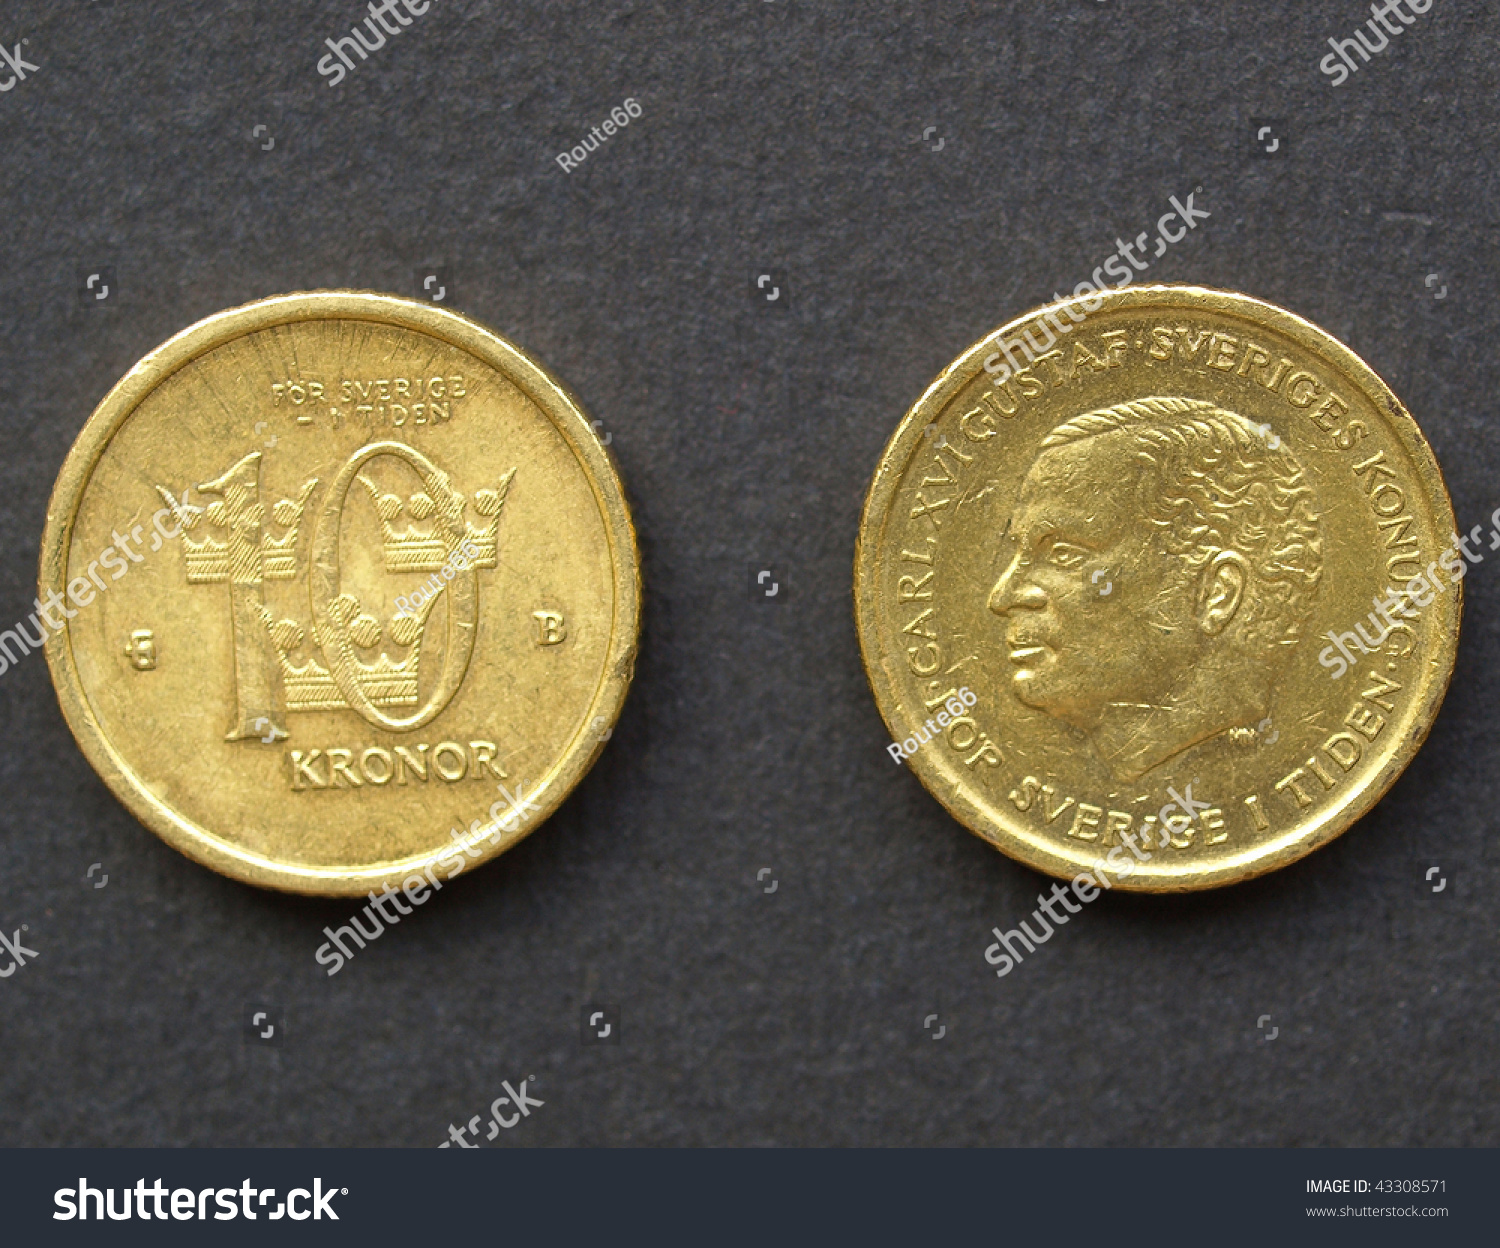 10 Swedish Krona Coin Stock Photo 43308571 : Shutterstock